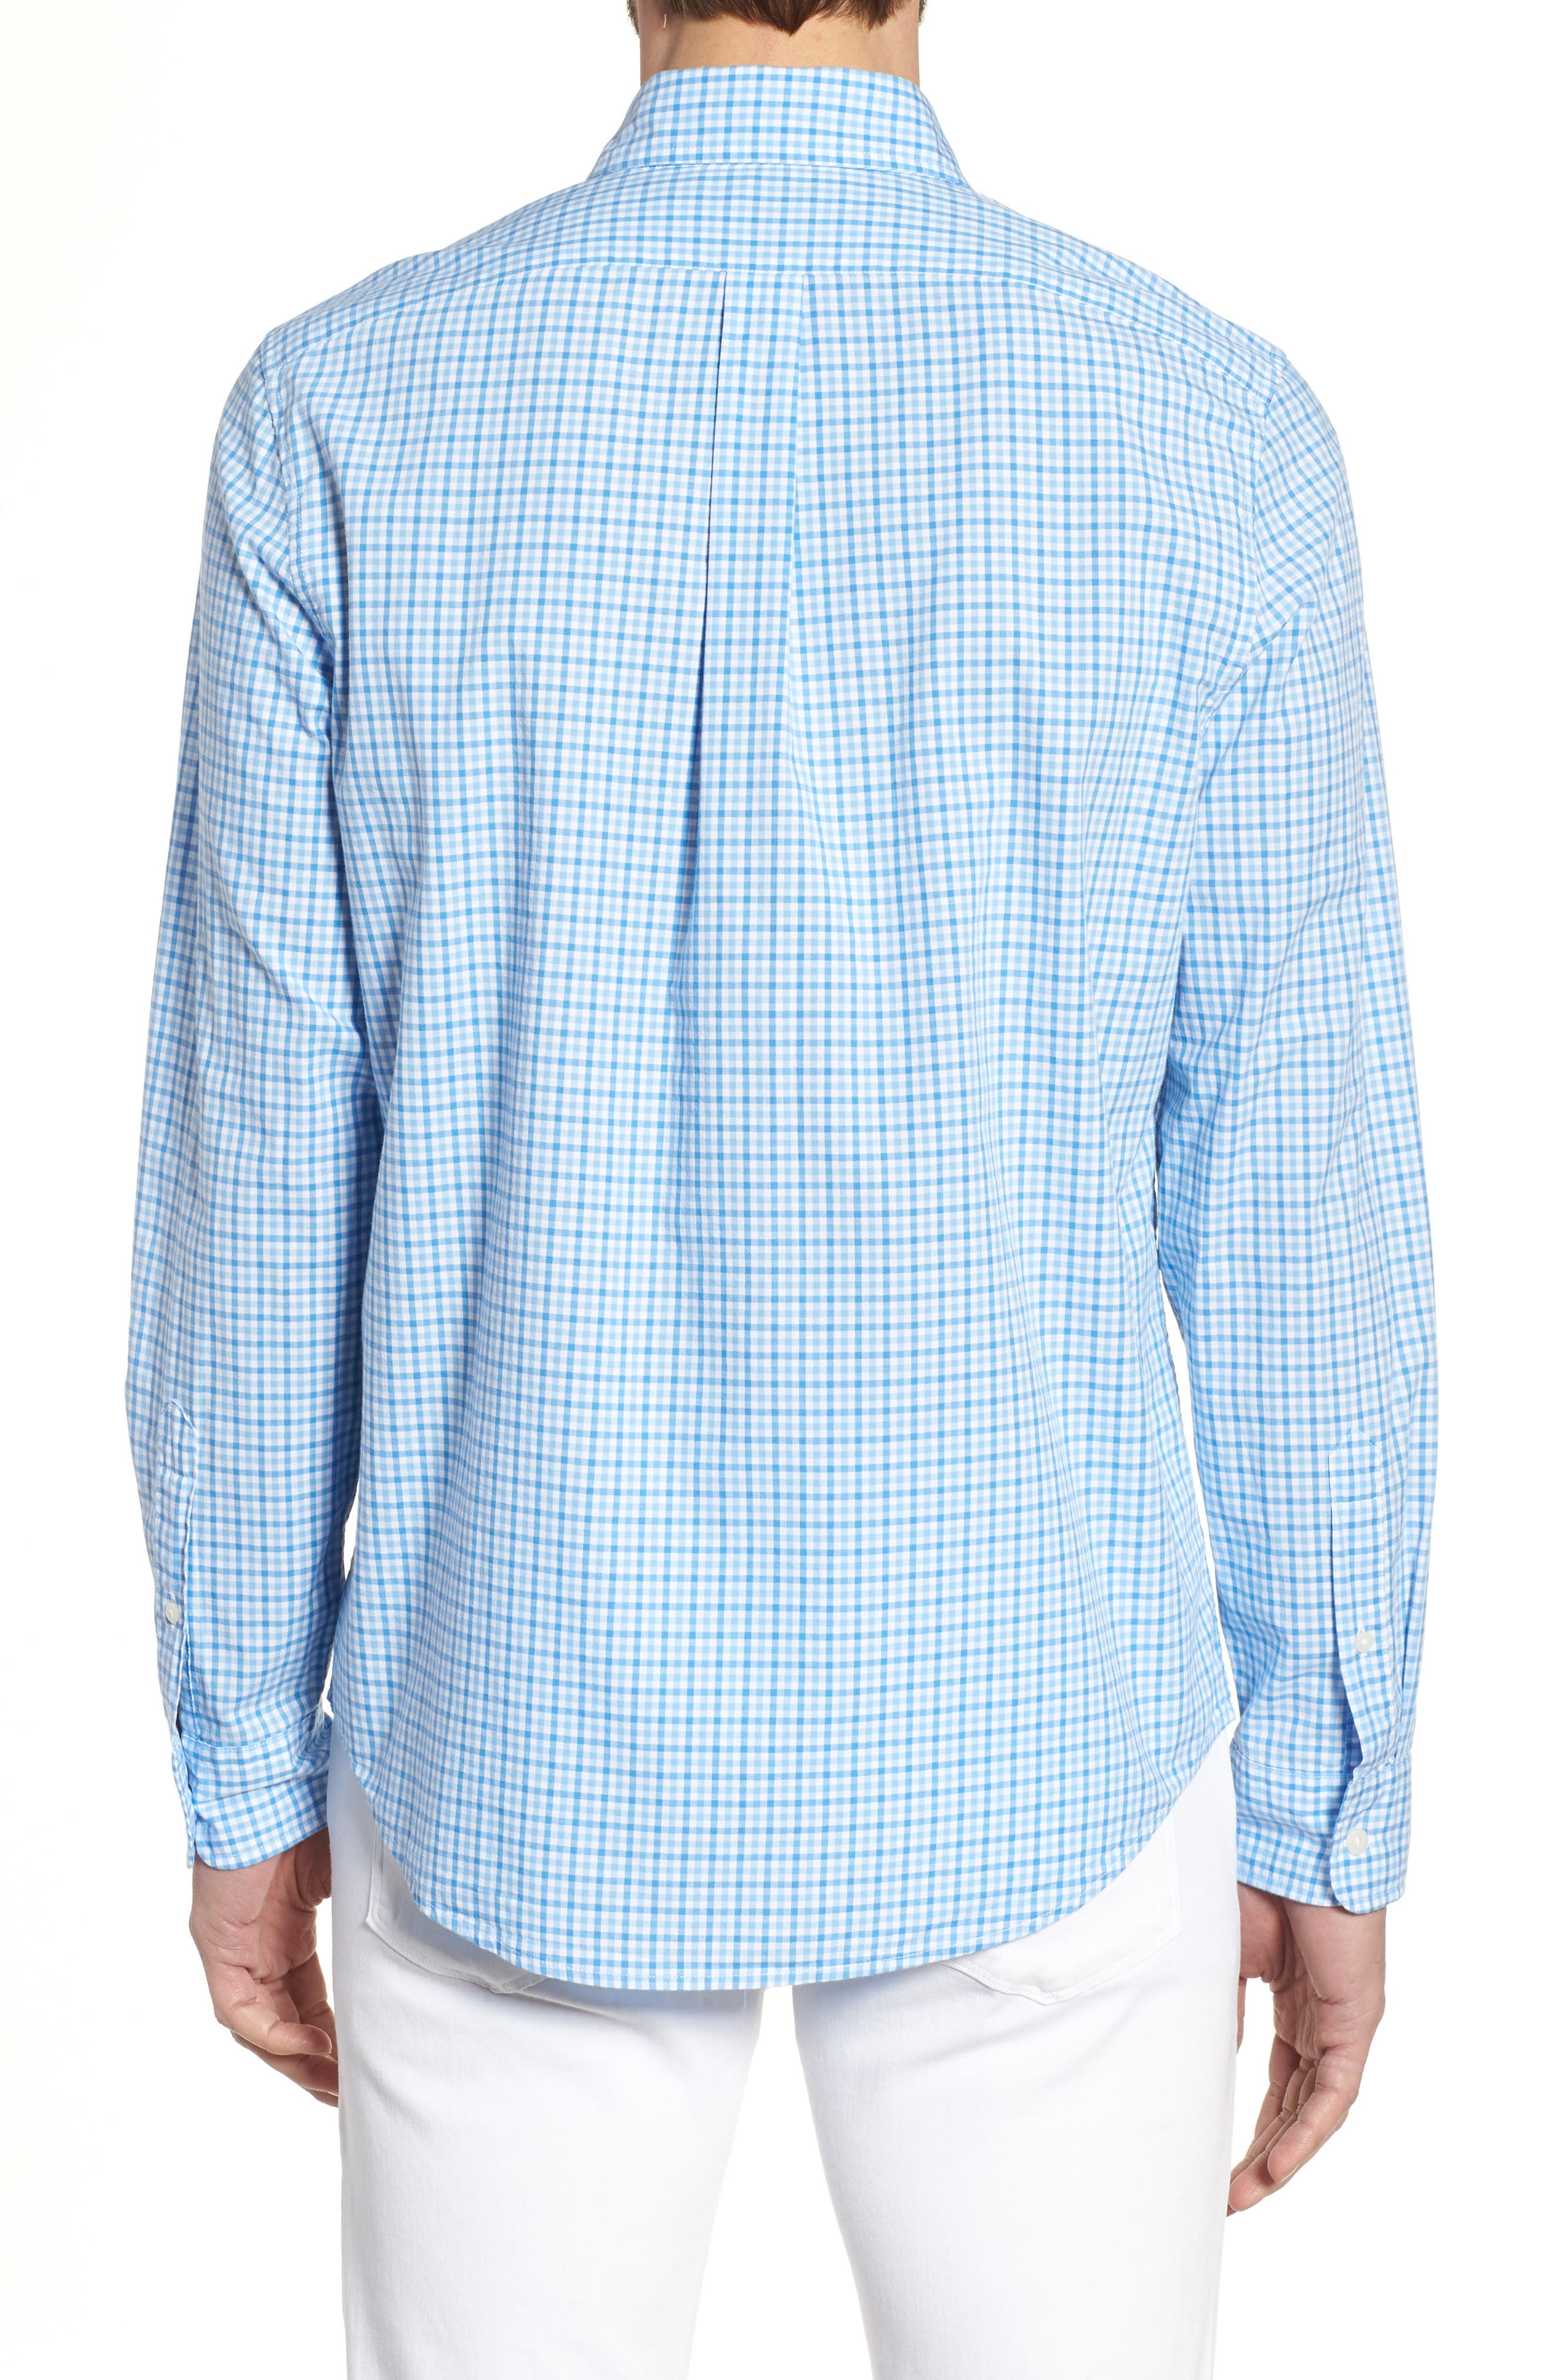 Tipsy Turtle Check Slim Fit Sport Shirt,                             Alternate thumbnail 2, color,                             Harbor Cay